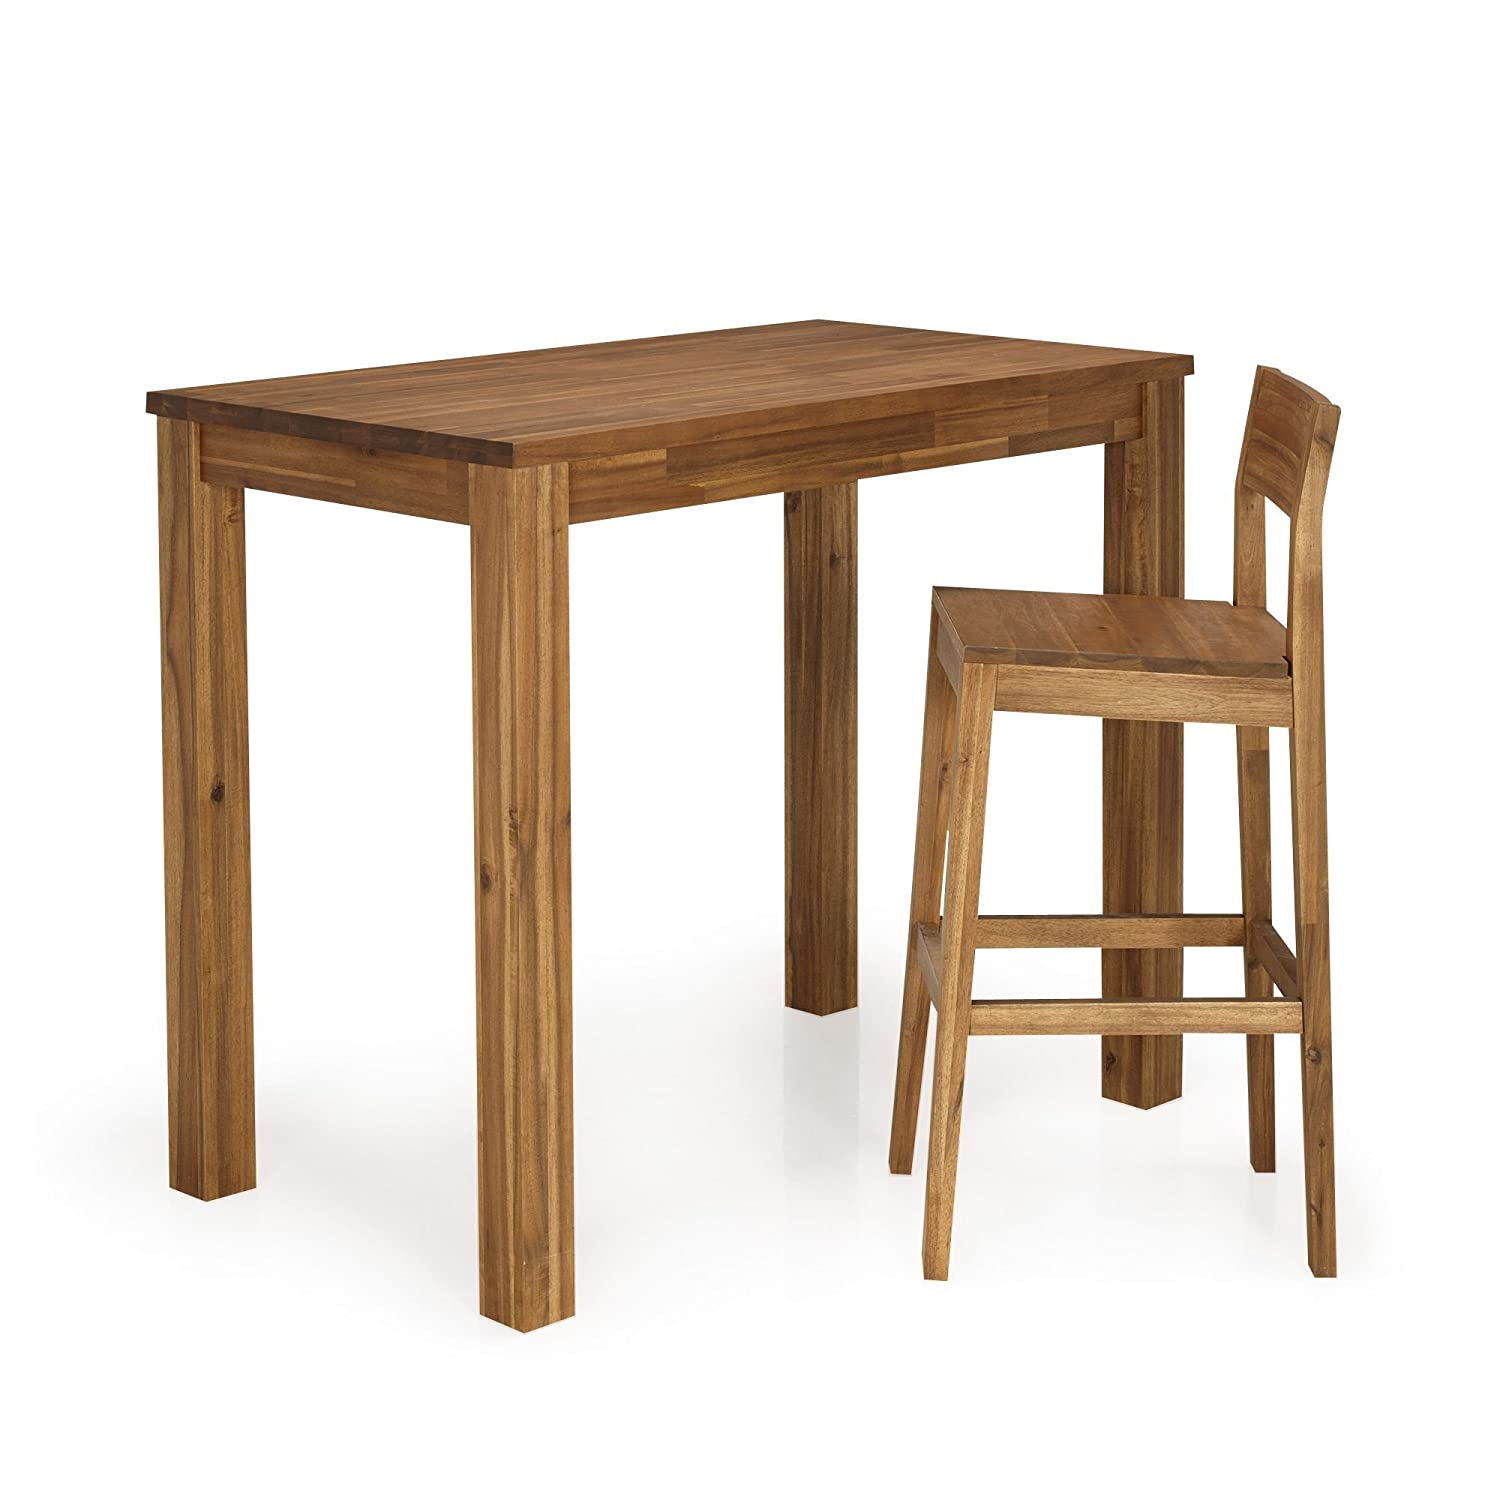 Alinea Creteil Affordable Tabouret De Bar En Bois Alina With Alinea